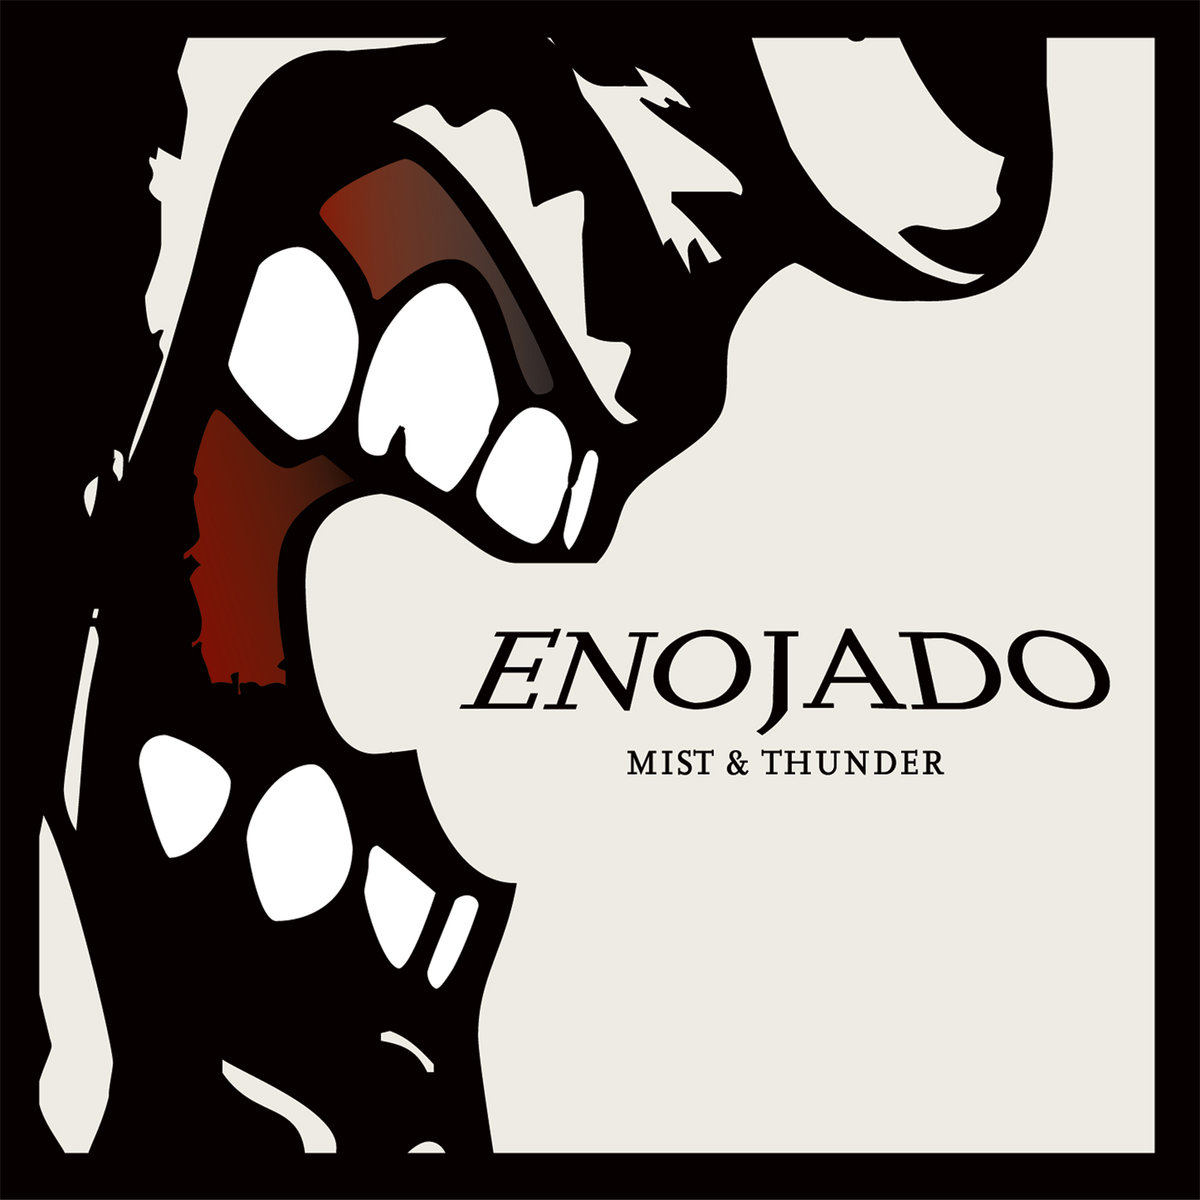 enojado mist and thunder